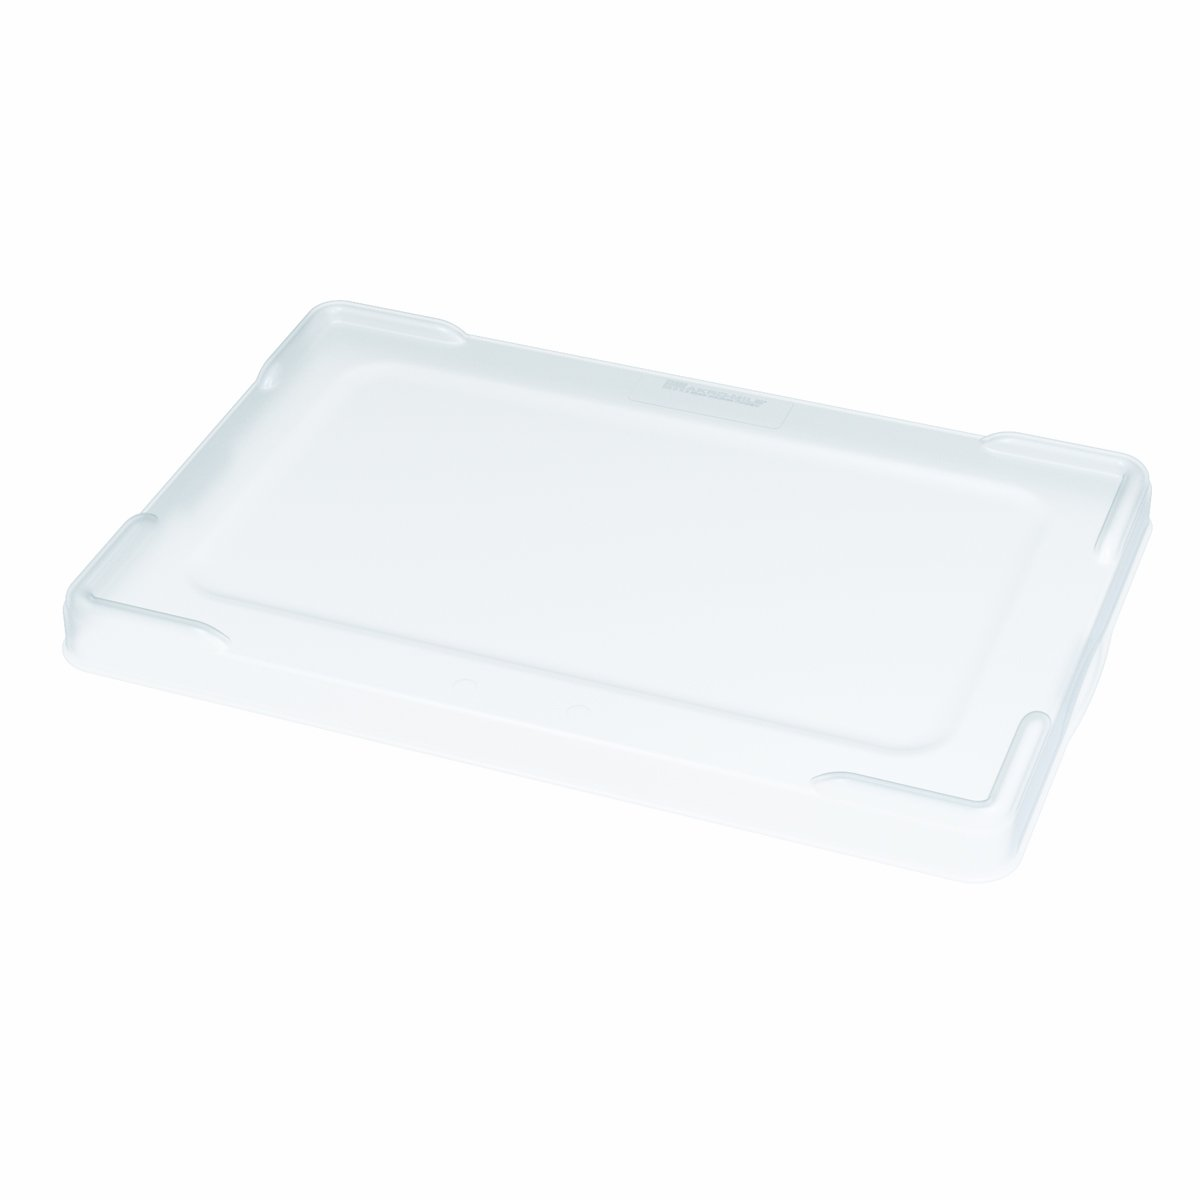 Akro-Mils 33061 Clear Snap on Plastic Lid for Akro-Mils 33164, 33166, 33168 Grid Box, Case of 4